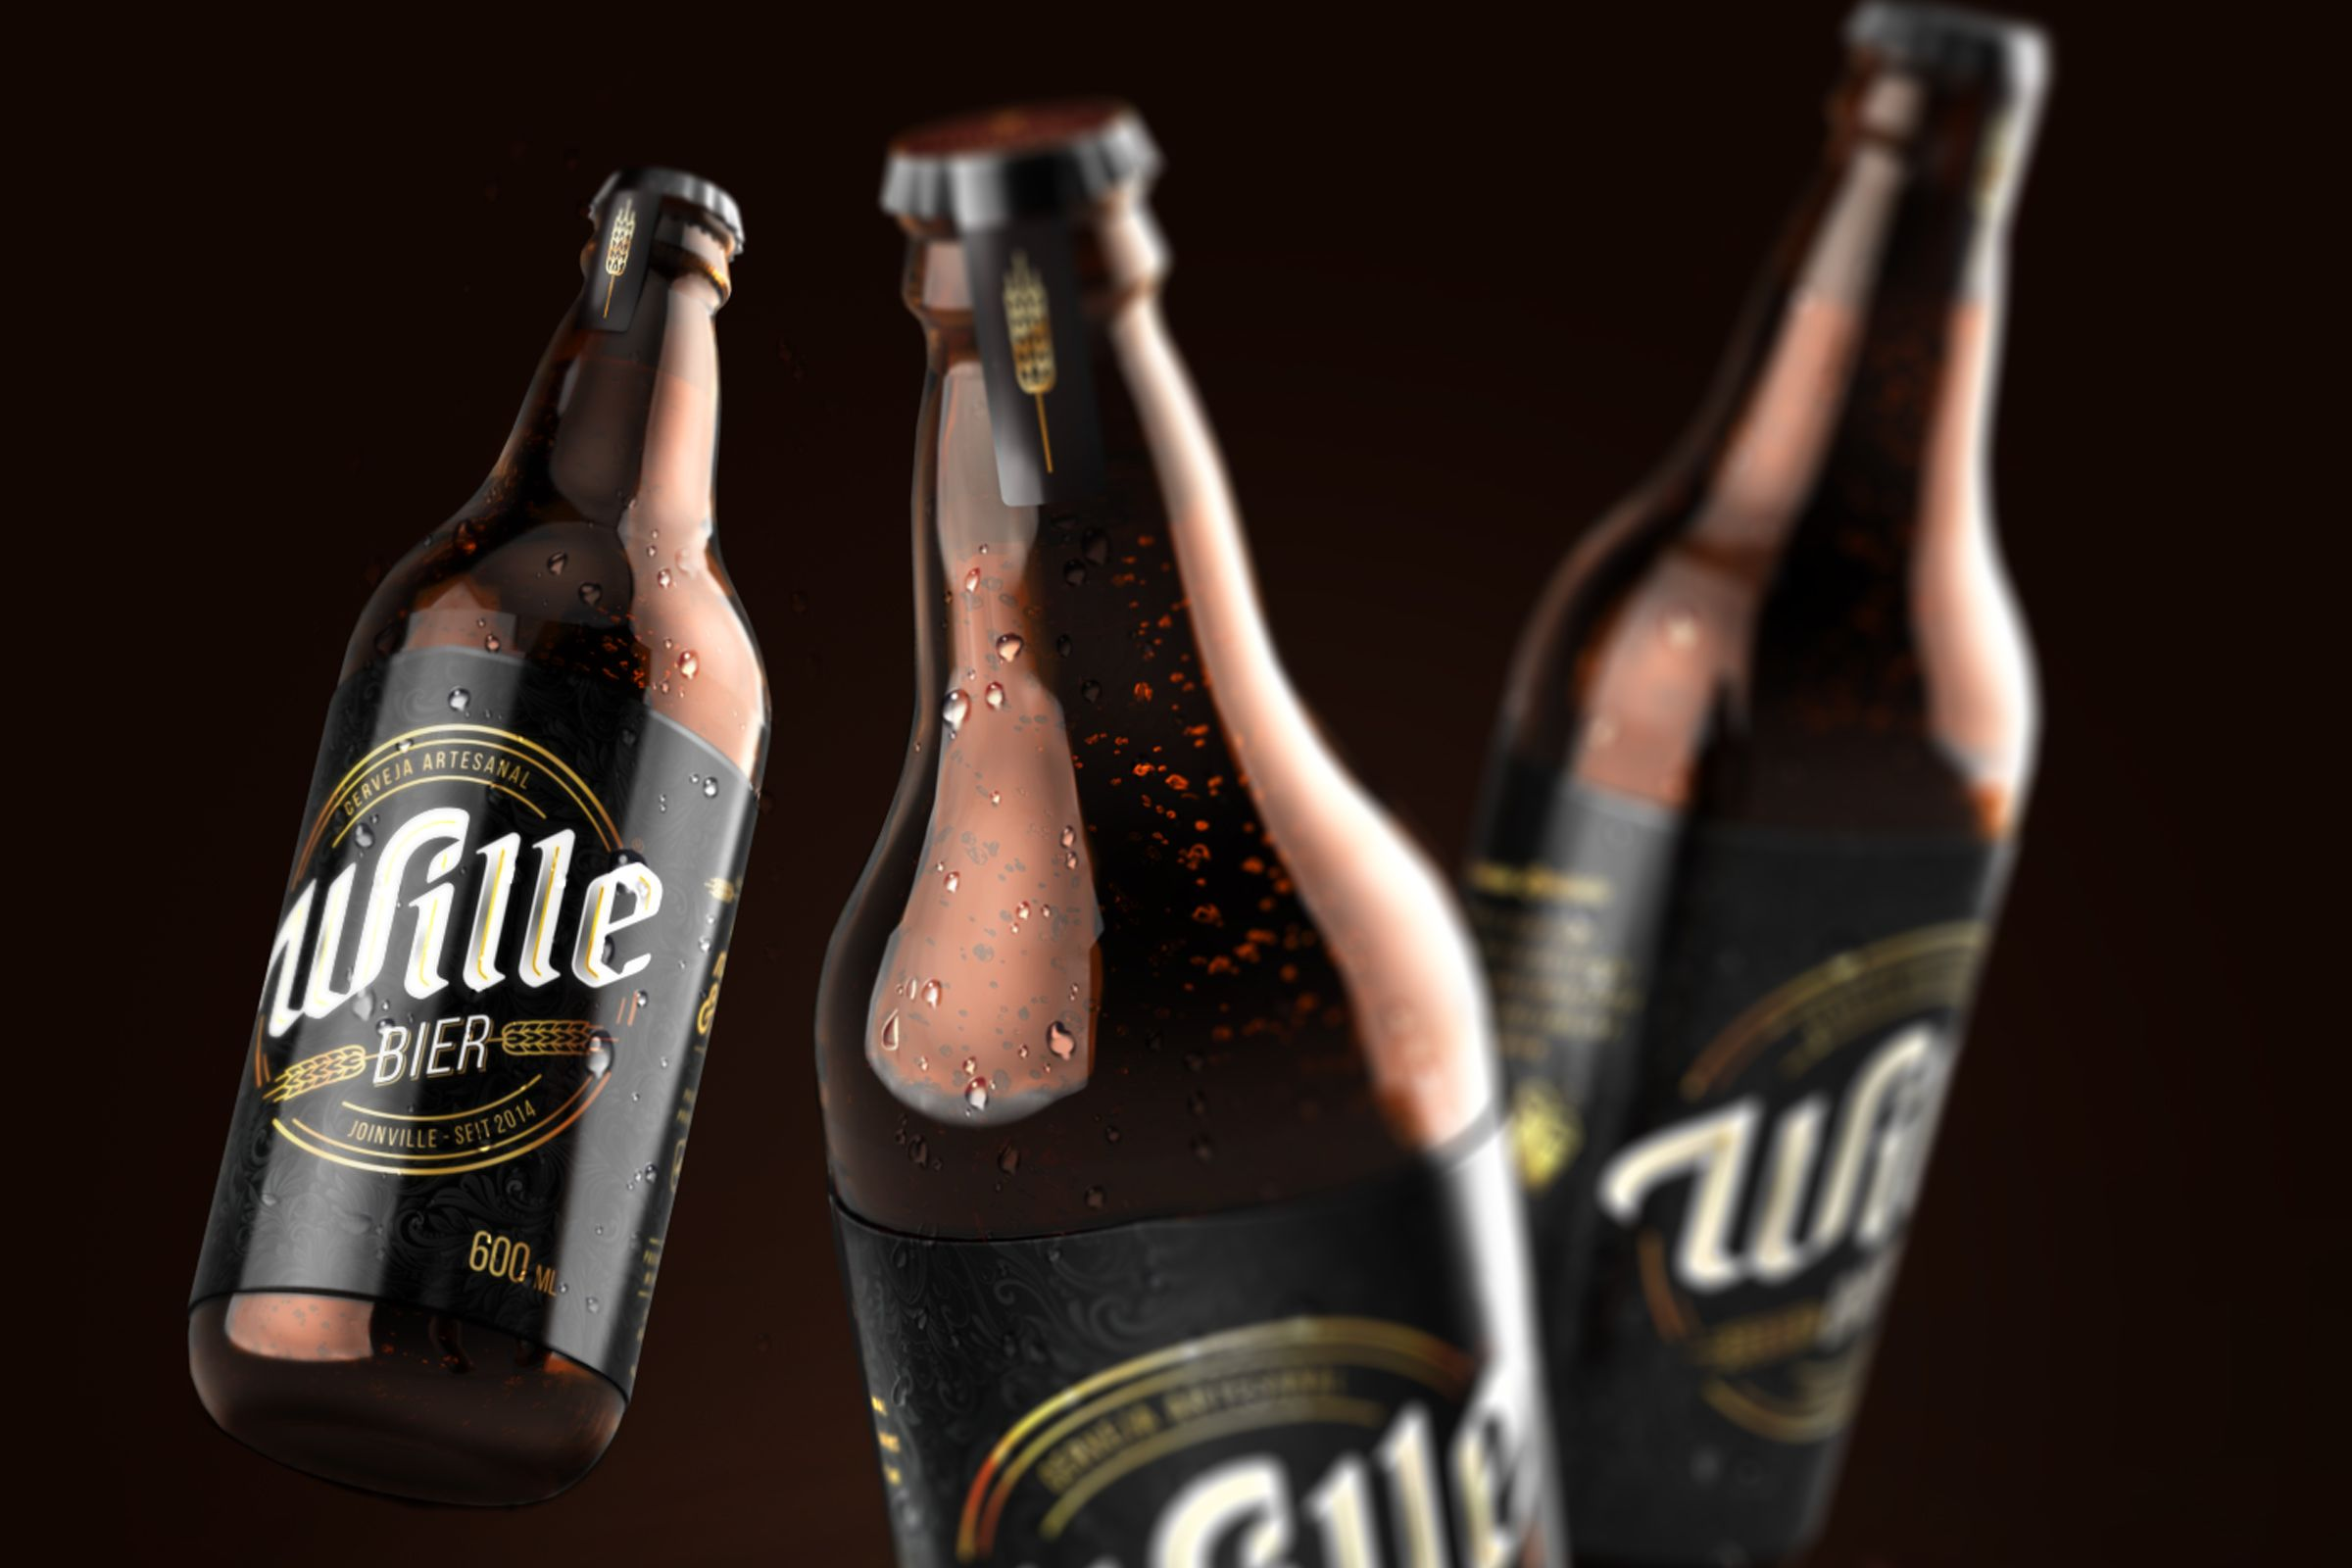 The craft beer market is booming pretty much anywhere you go, but  especially in Brazil. Wille Bier was founded in 2014 in Brazil by two beer  lovers hoping to create a handmade product of the highest quality. Using  only imported raw and select materials, they create their brews according  to the German Purity Law.